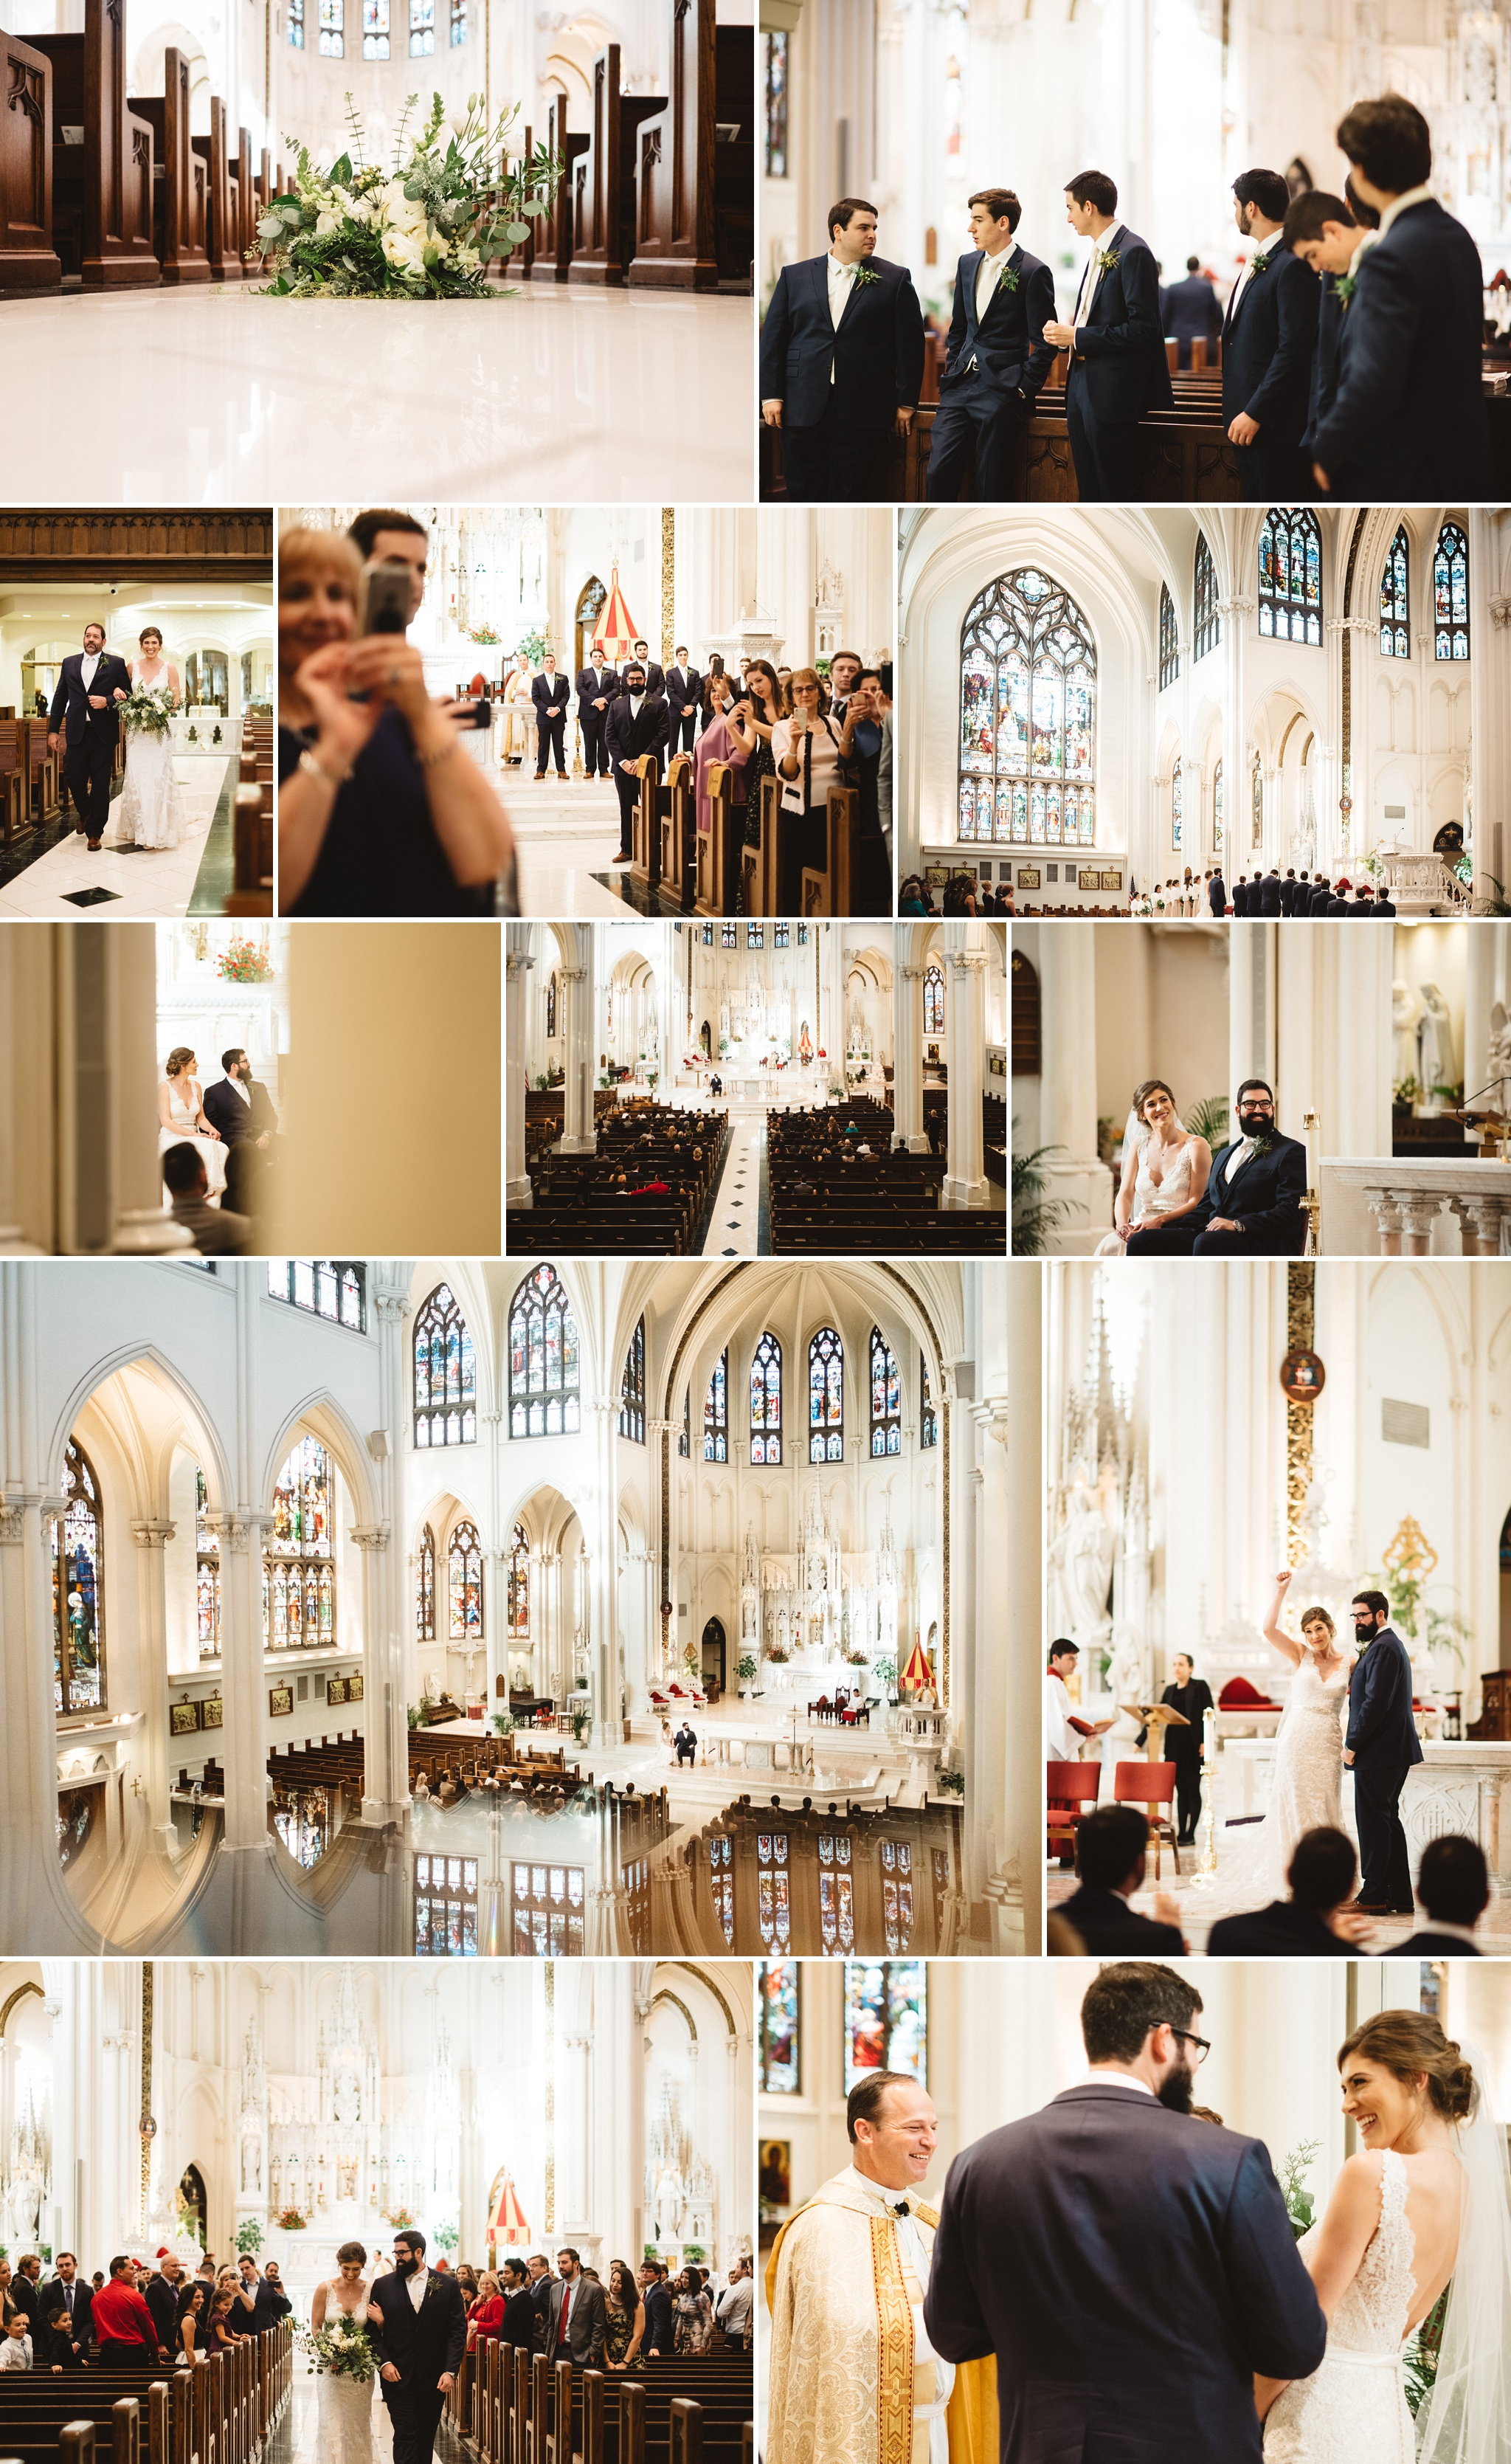 Sarah + Charlie's ceremony at the Cathedral Basilica of Immaculate Conception, Denver.